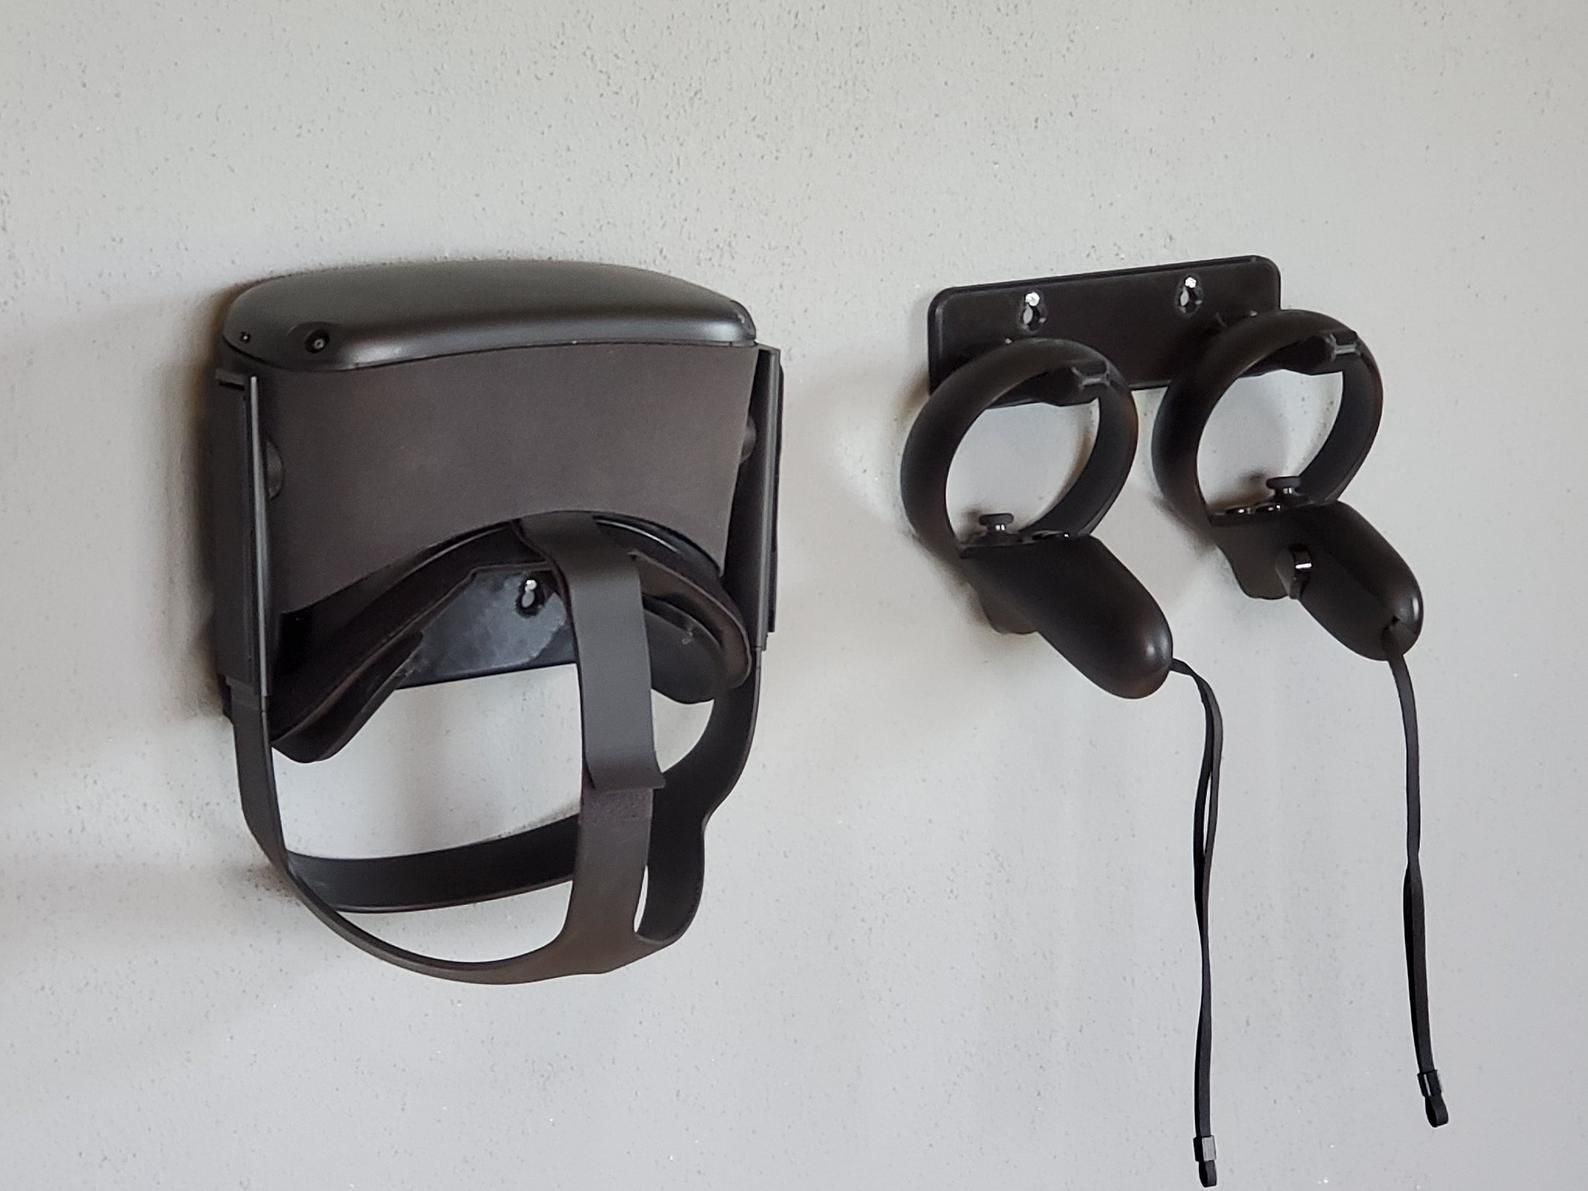 Vr Headset Stand And Controller Wall Mount For Oculus Quest Etsy In 2020 Headset Stand Vr Headset Virtual Reality Headset